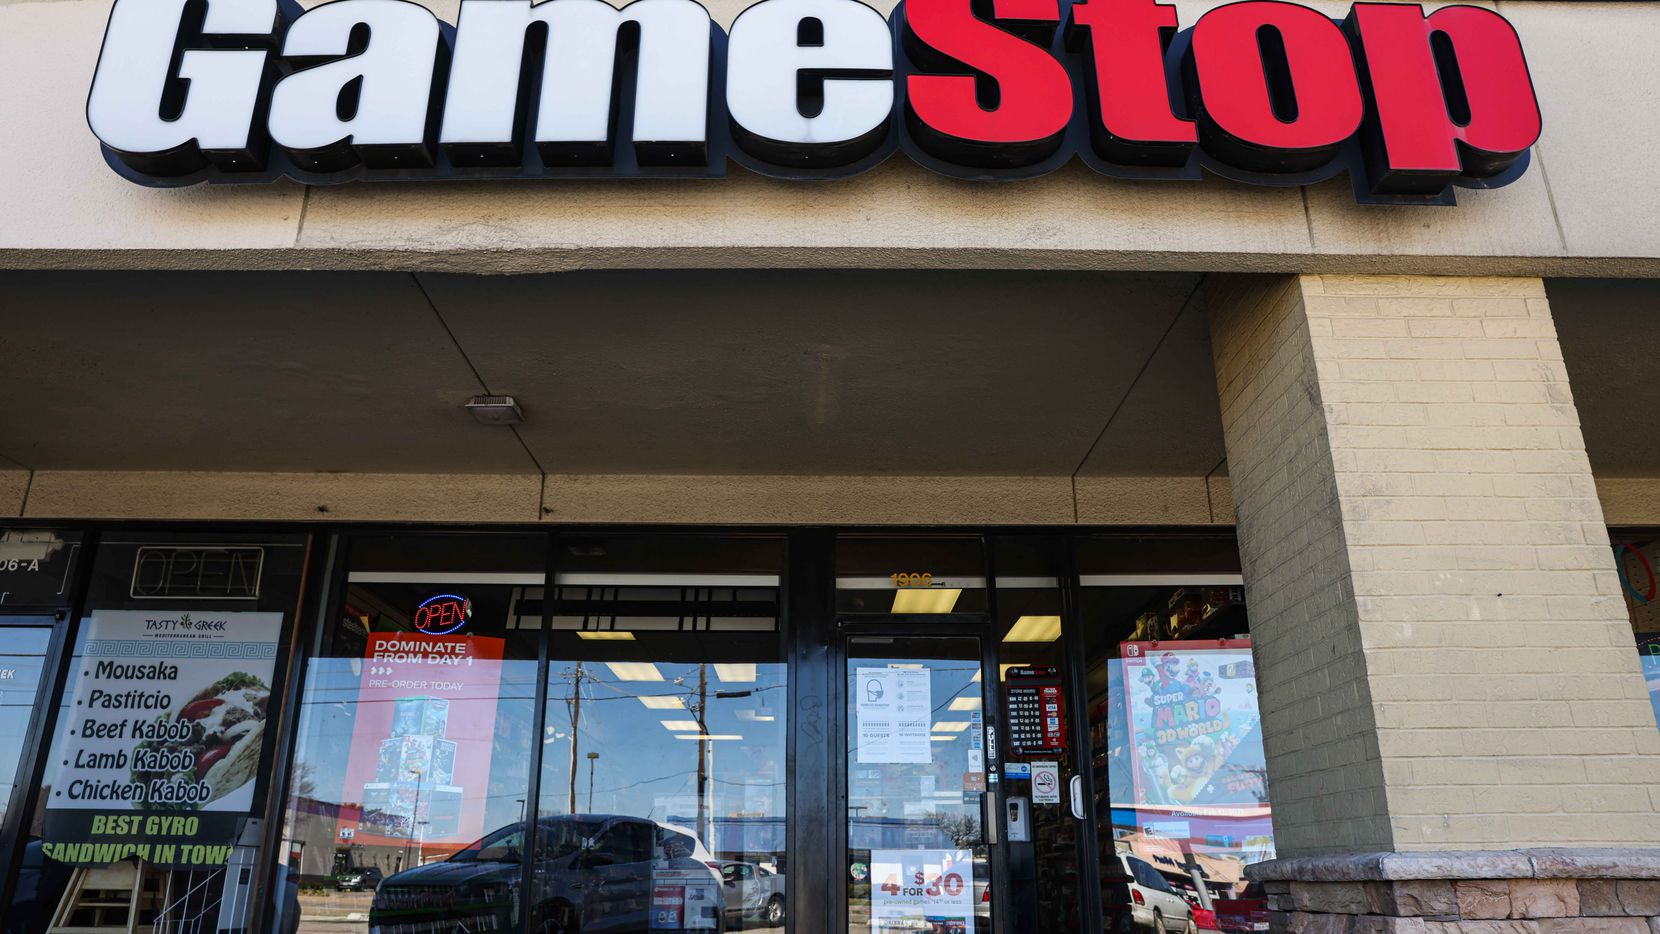 GameStop at Carrollton Park in Carrollton.